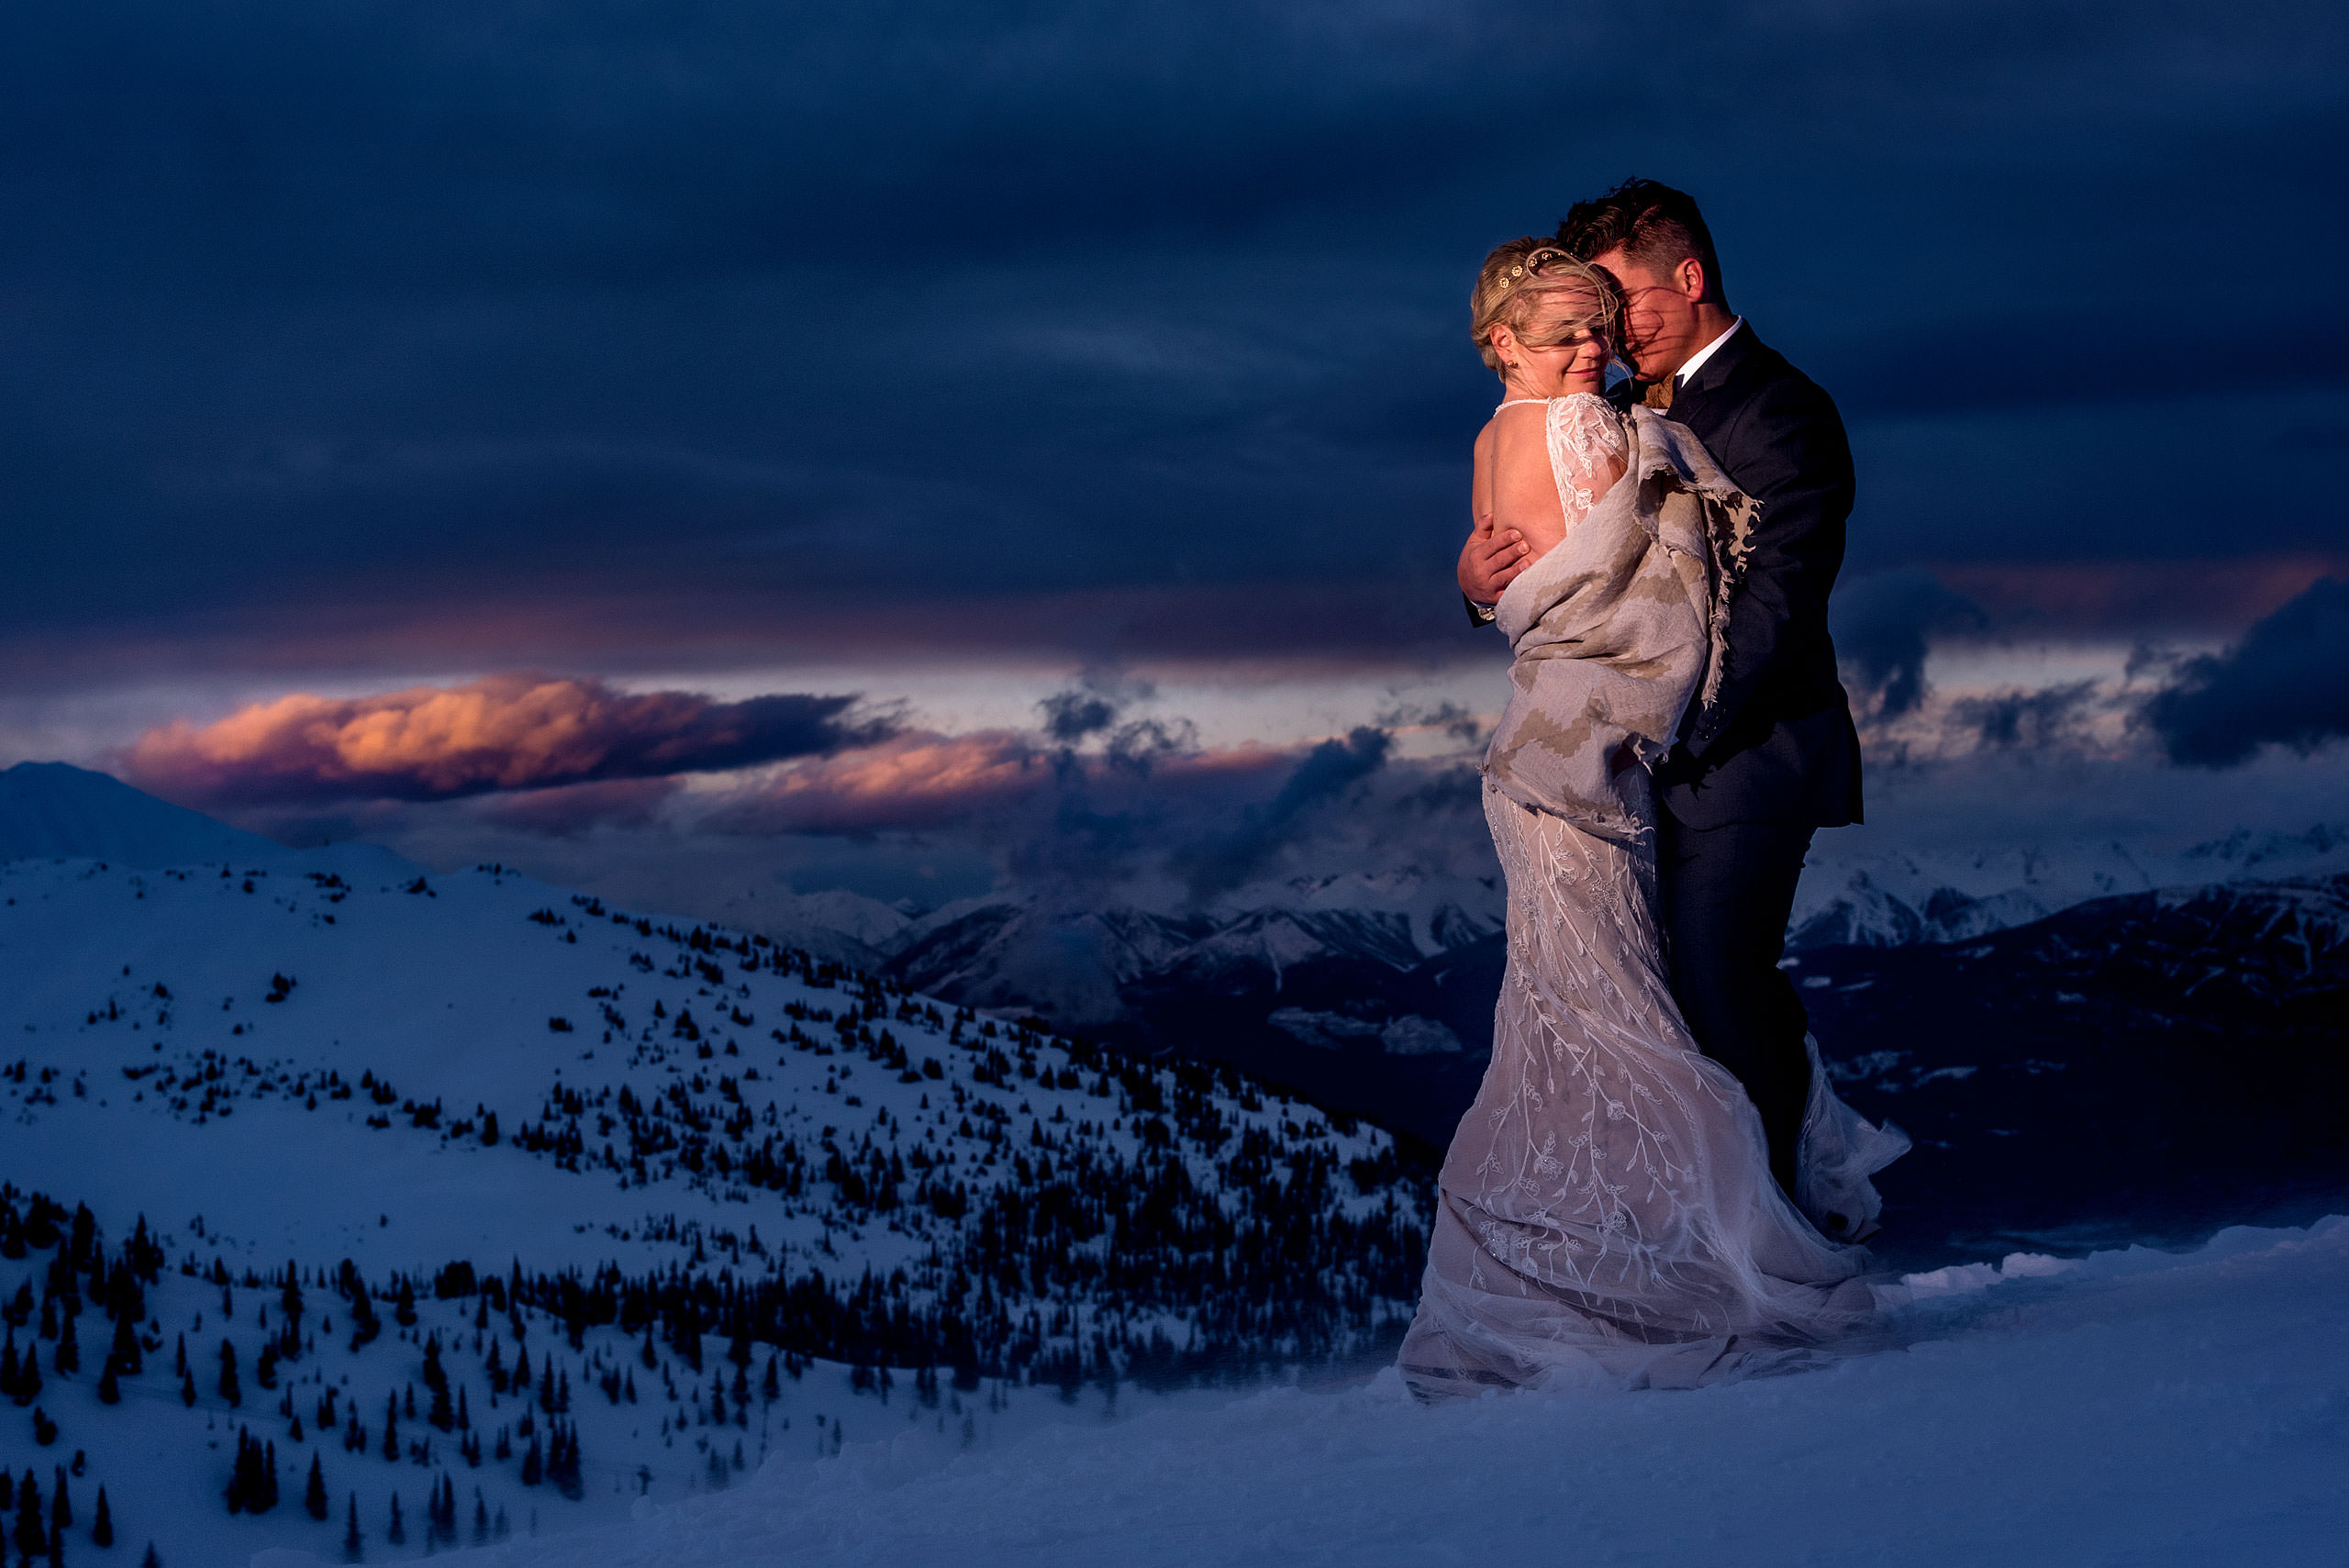 bride and groom on the top of a mountain in the winter at dusk